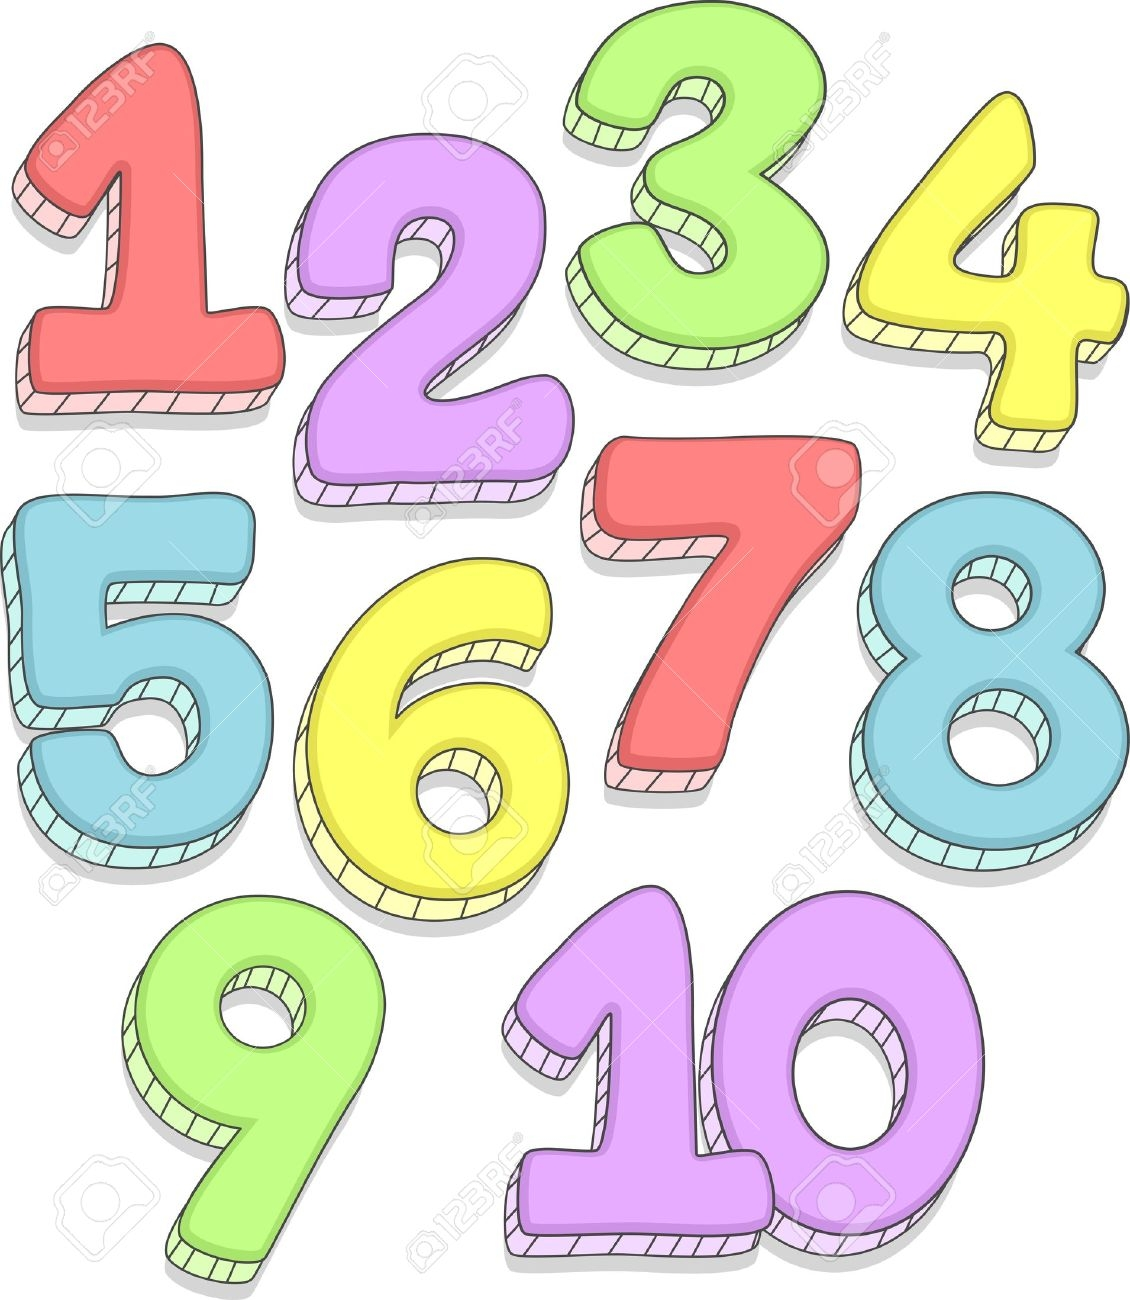 Numbers clipart 1 10.